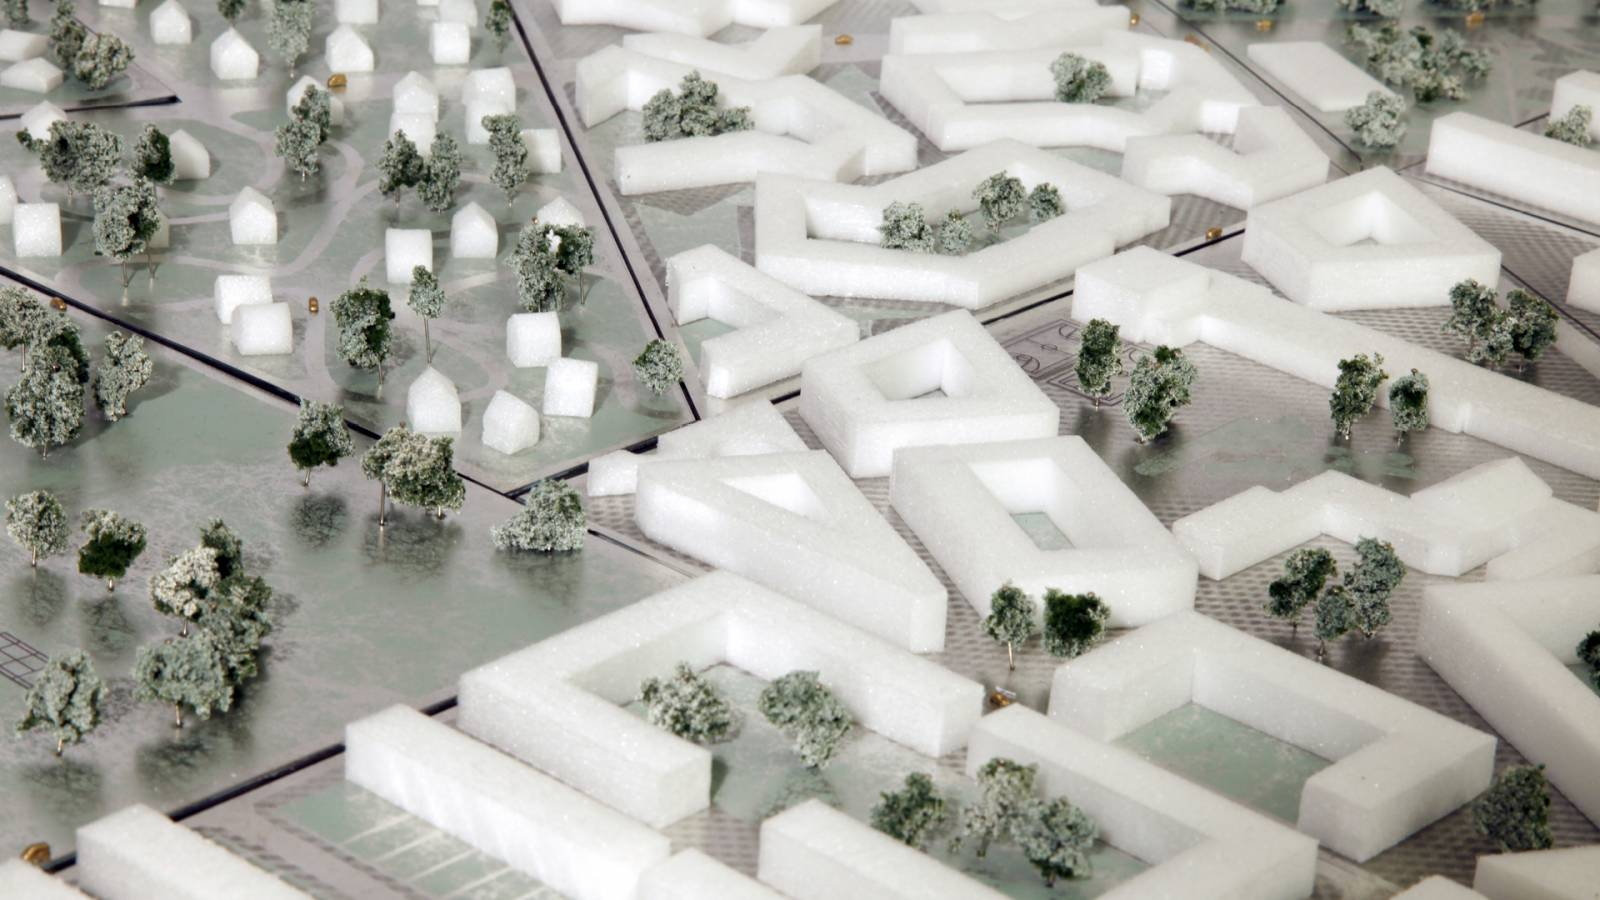 TRANSFORMATION AND NEW DEVELOPMENTS - Drottninghög - SPOL Architects